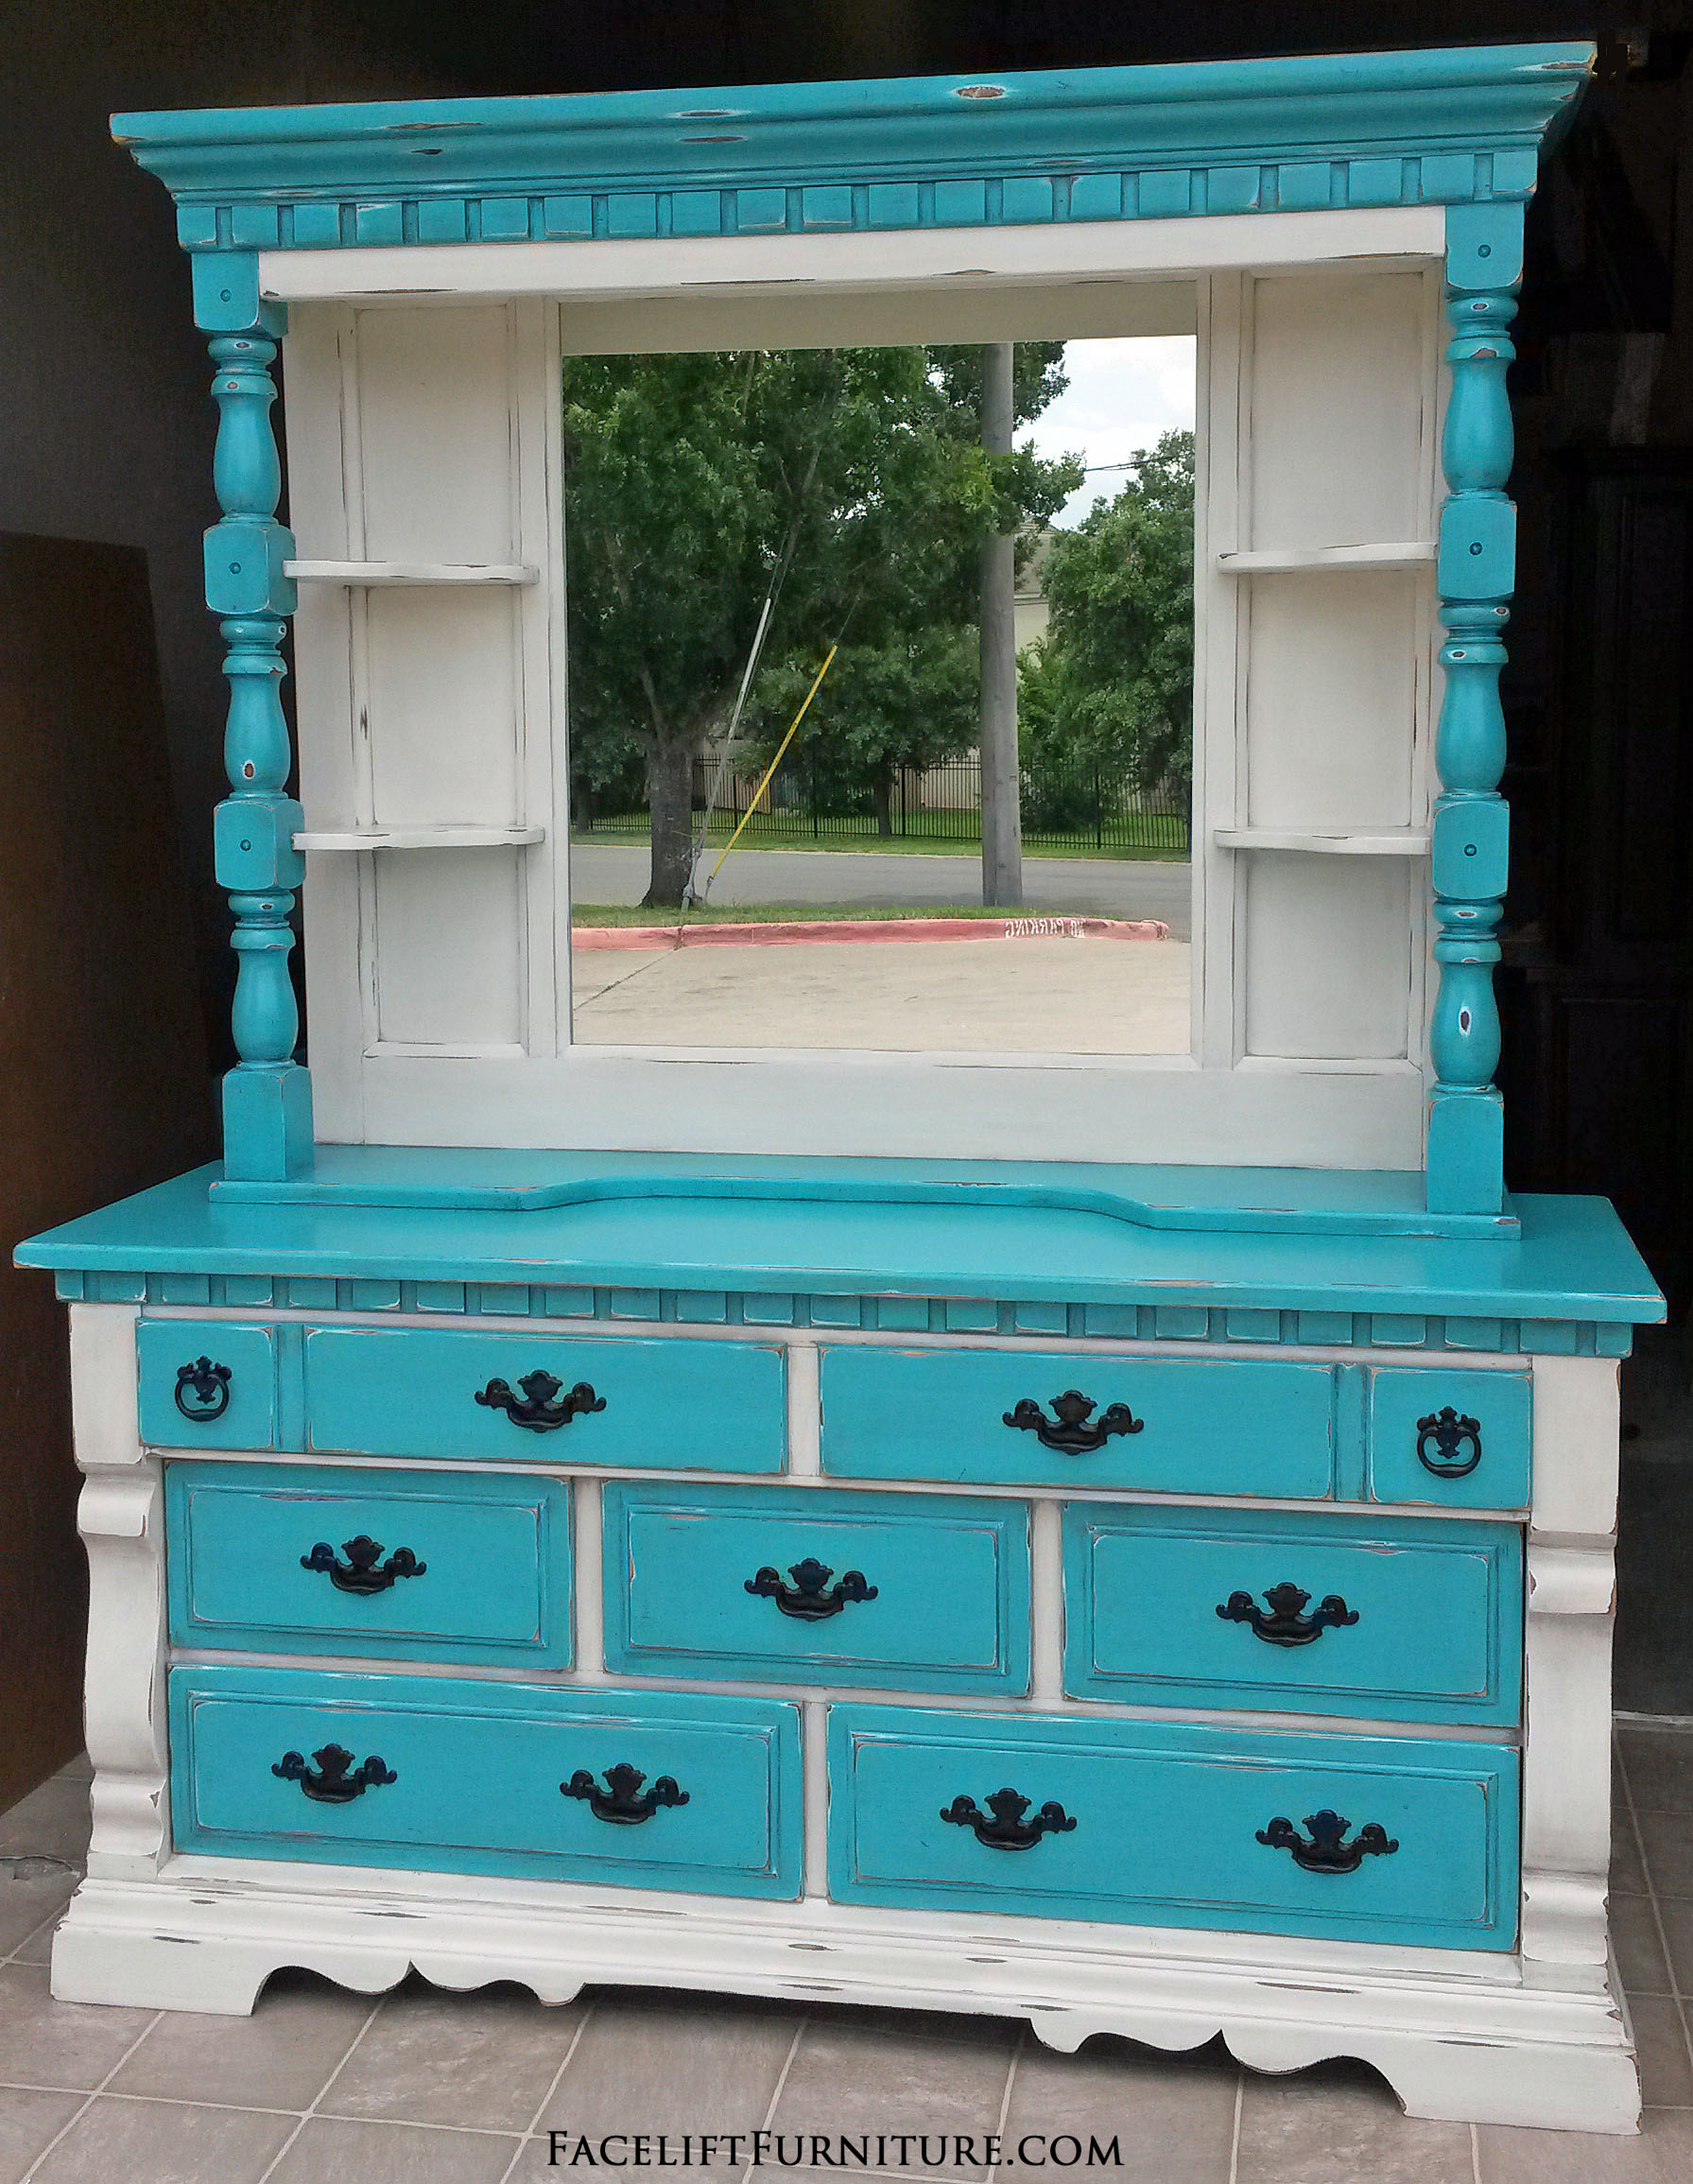 fullxfull turquoise one the iris furniture kind ipsi a art of coaching gallery classes